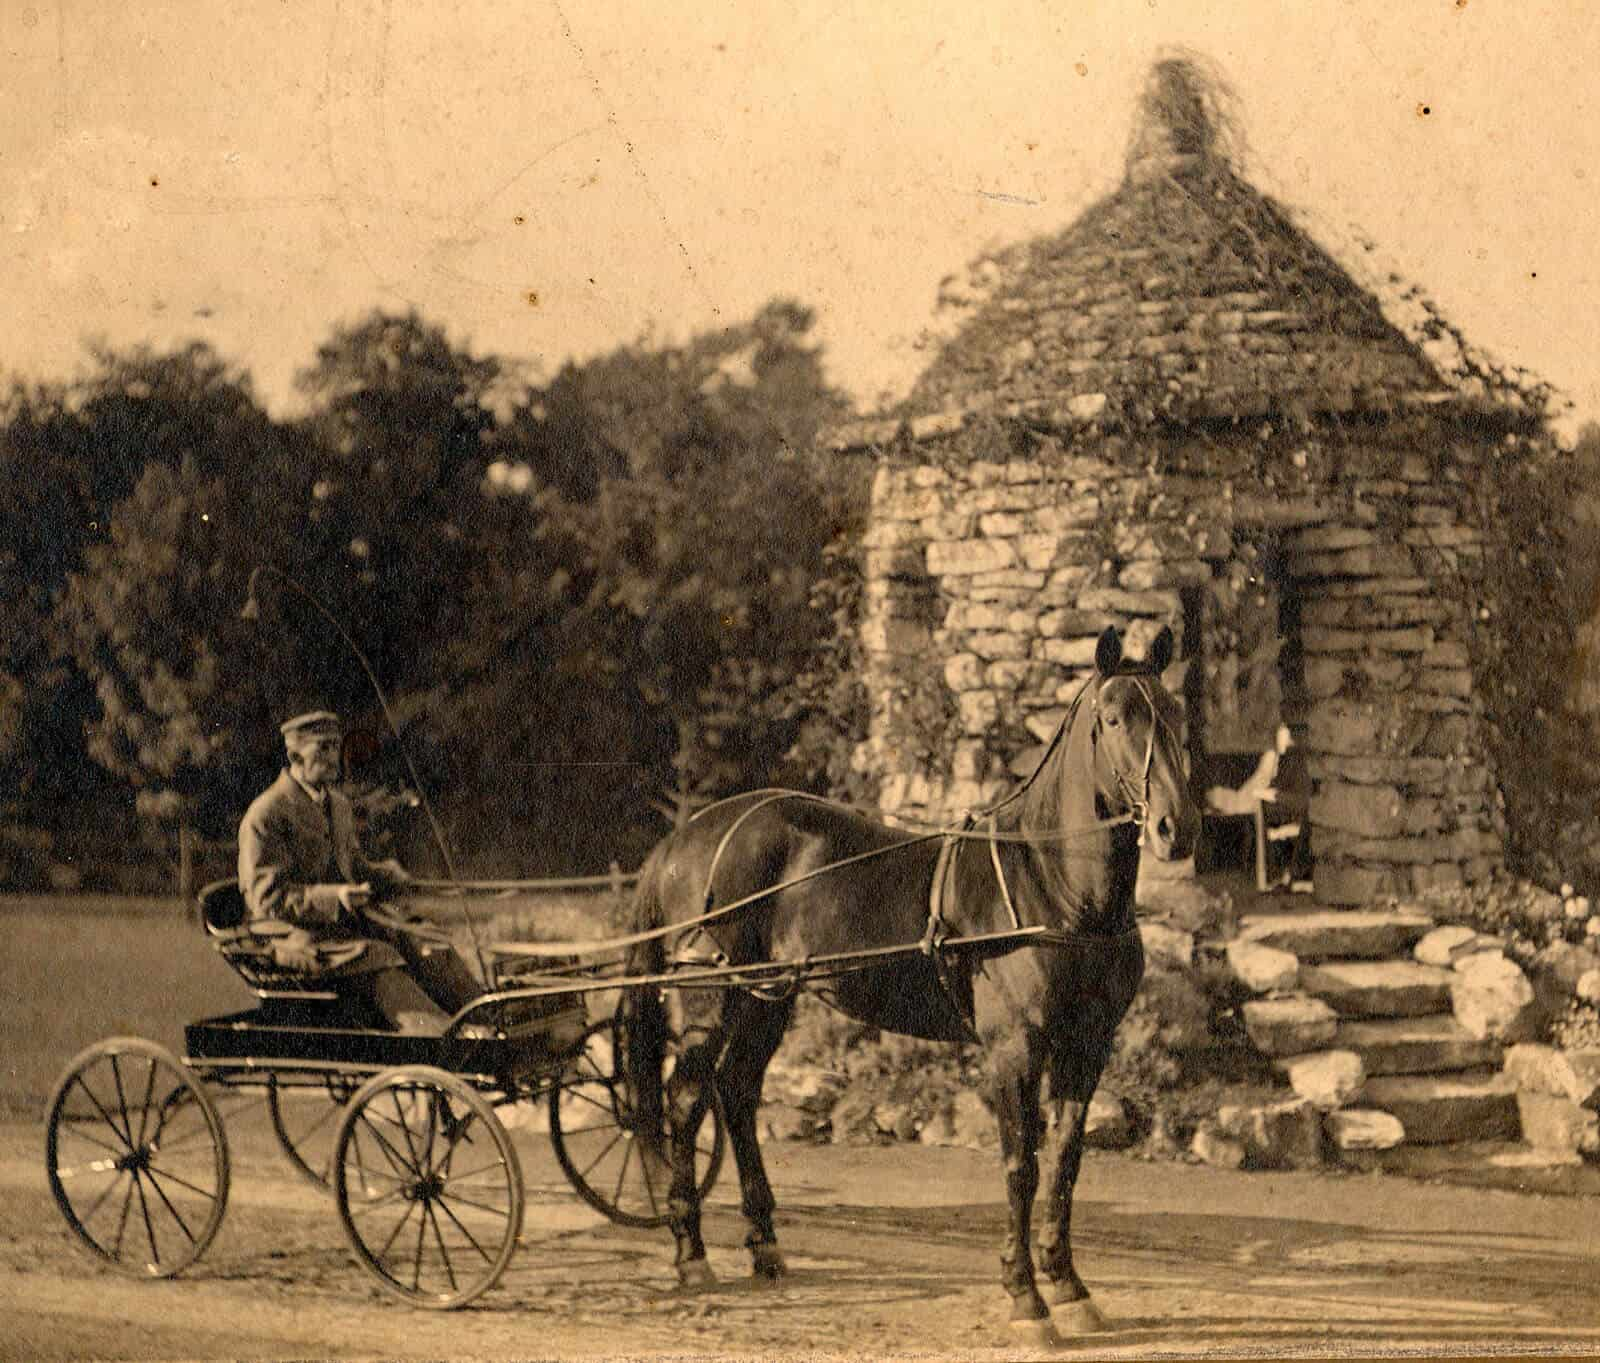 Stone summerhouse at 1900